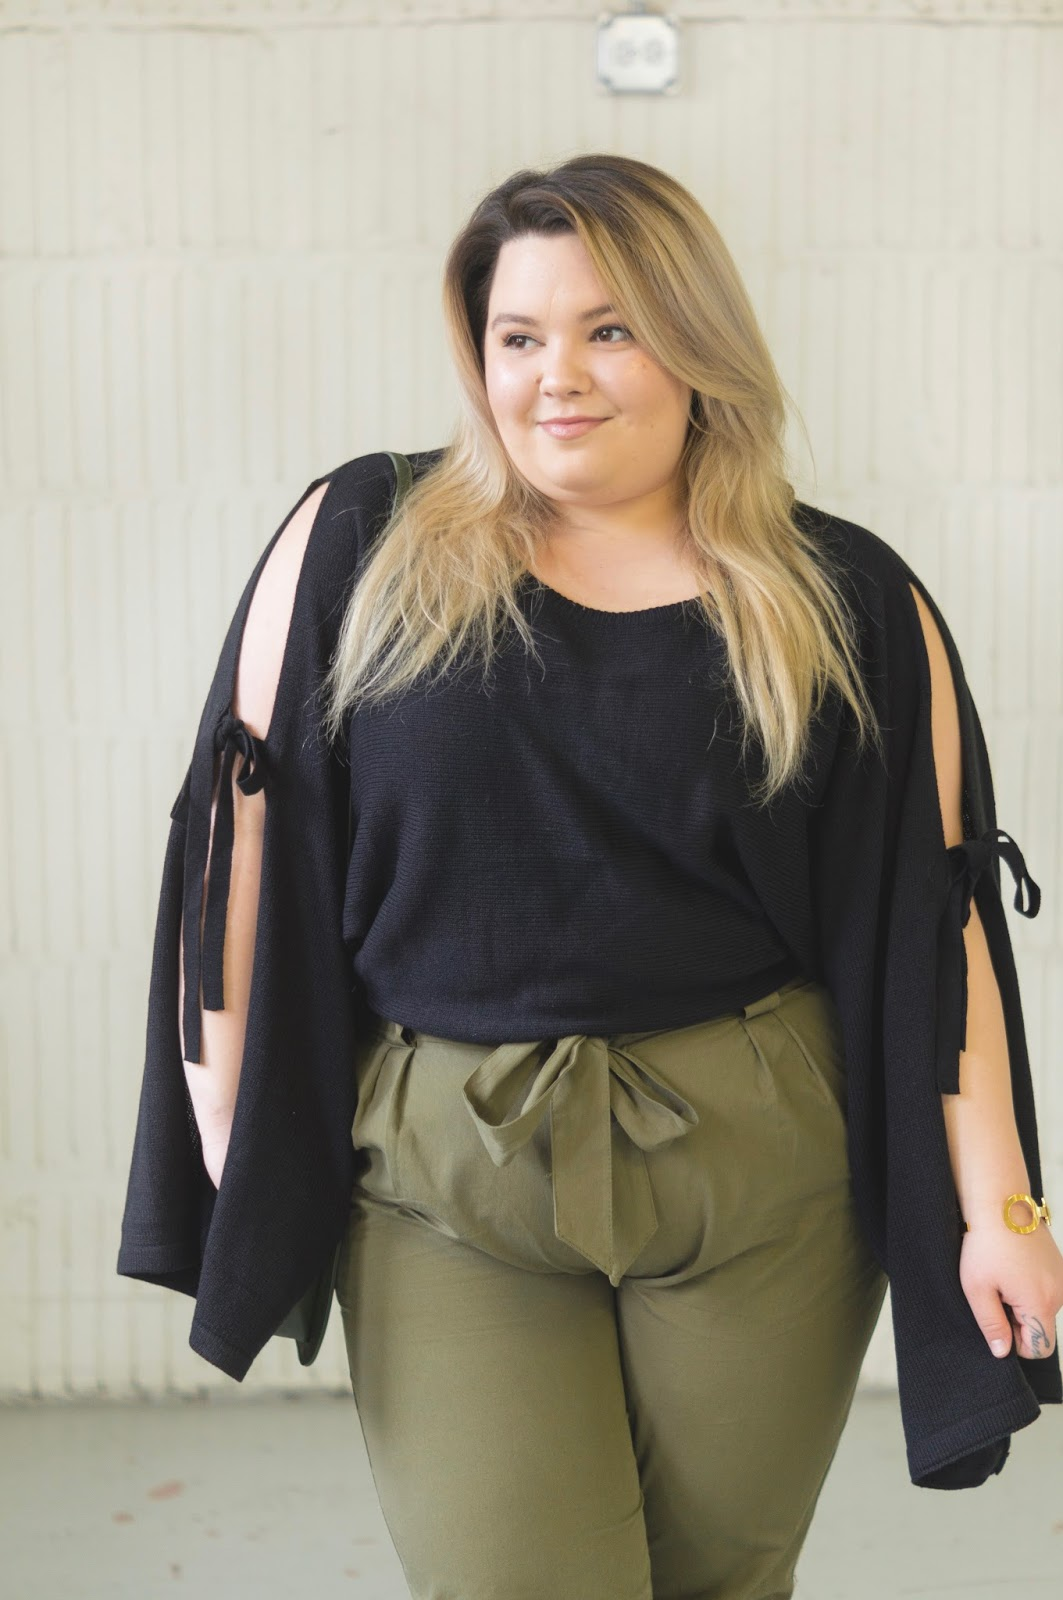 plus size fashion, affordable plus size clothing, natalie craig, Chicago plus size model, plus model magazine. skorch magazine, eff your beauty standards, fatshion, cargo pants, fashion nova curve, plus size cargo pants, petite plus, short plus size women, natalie in the city